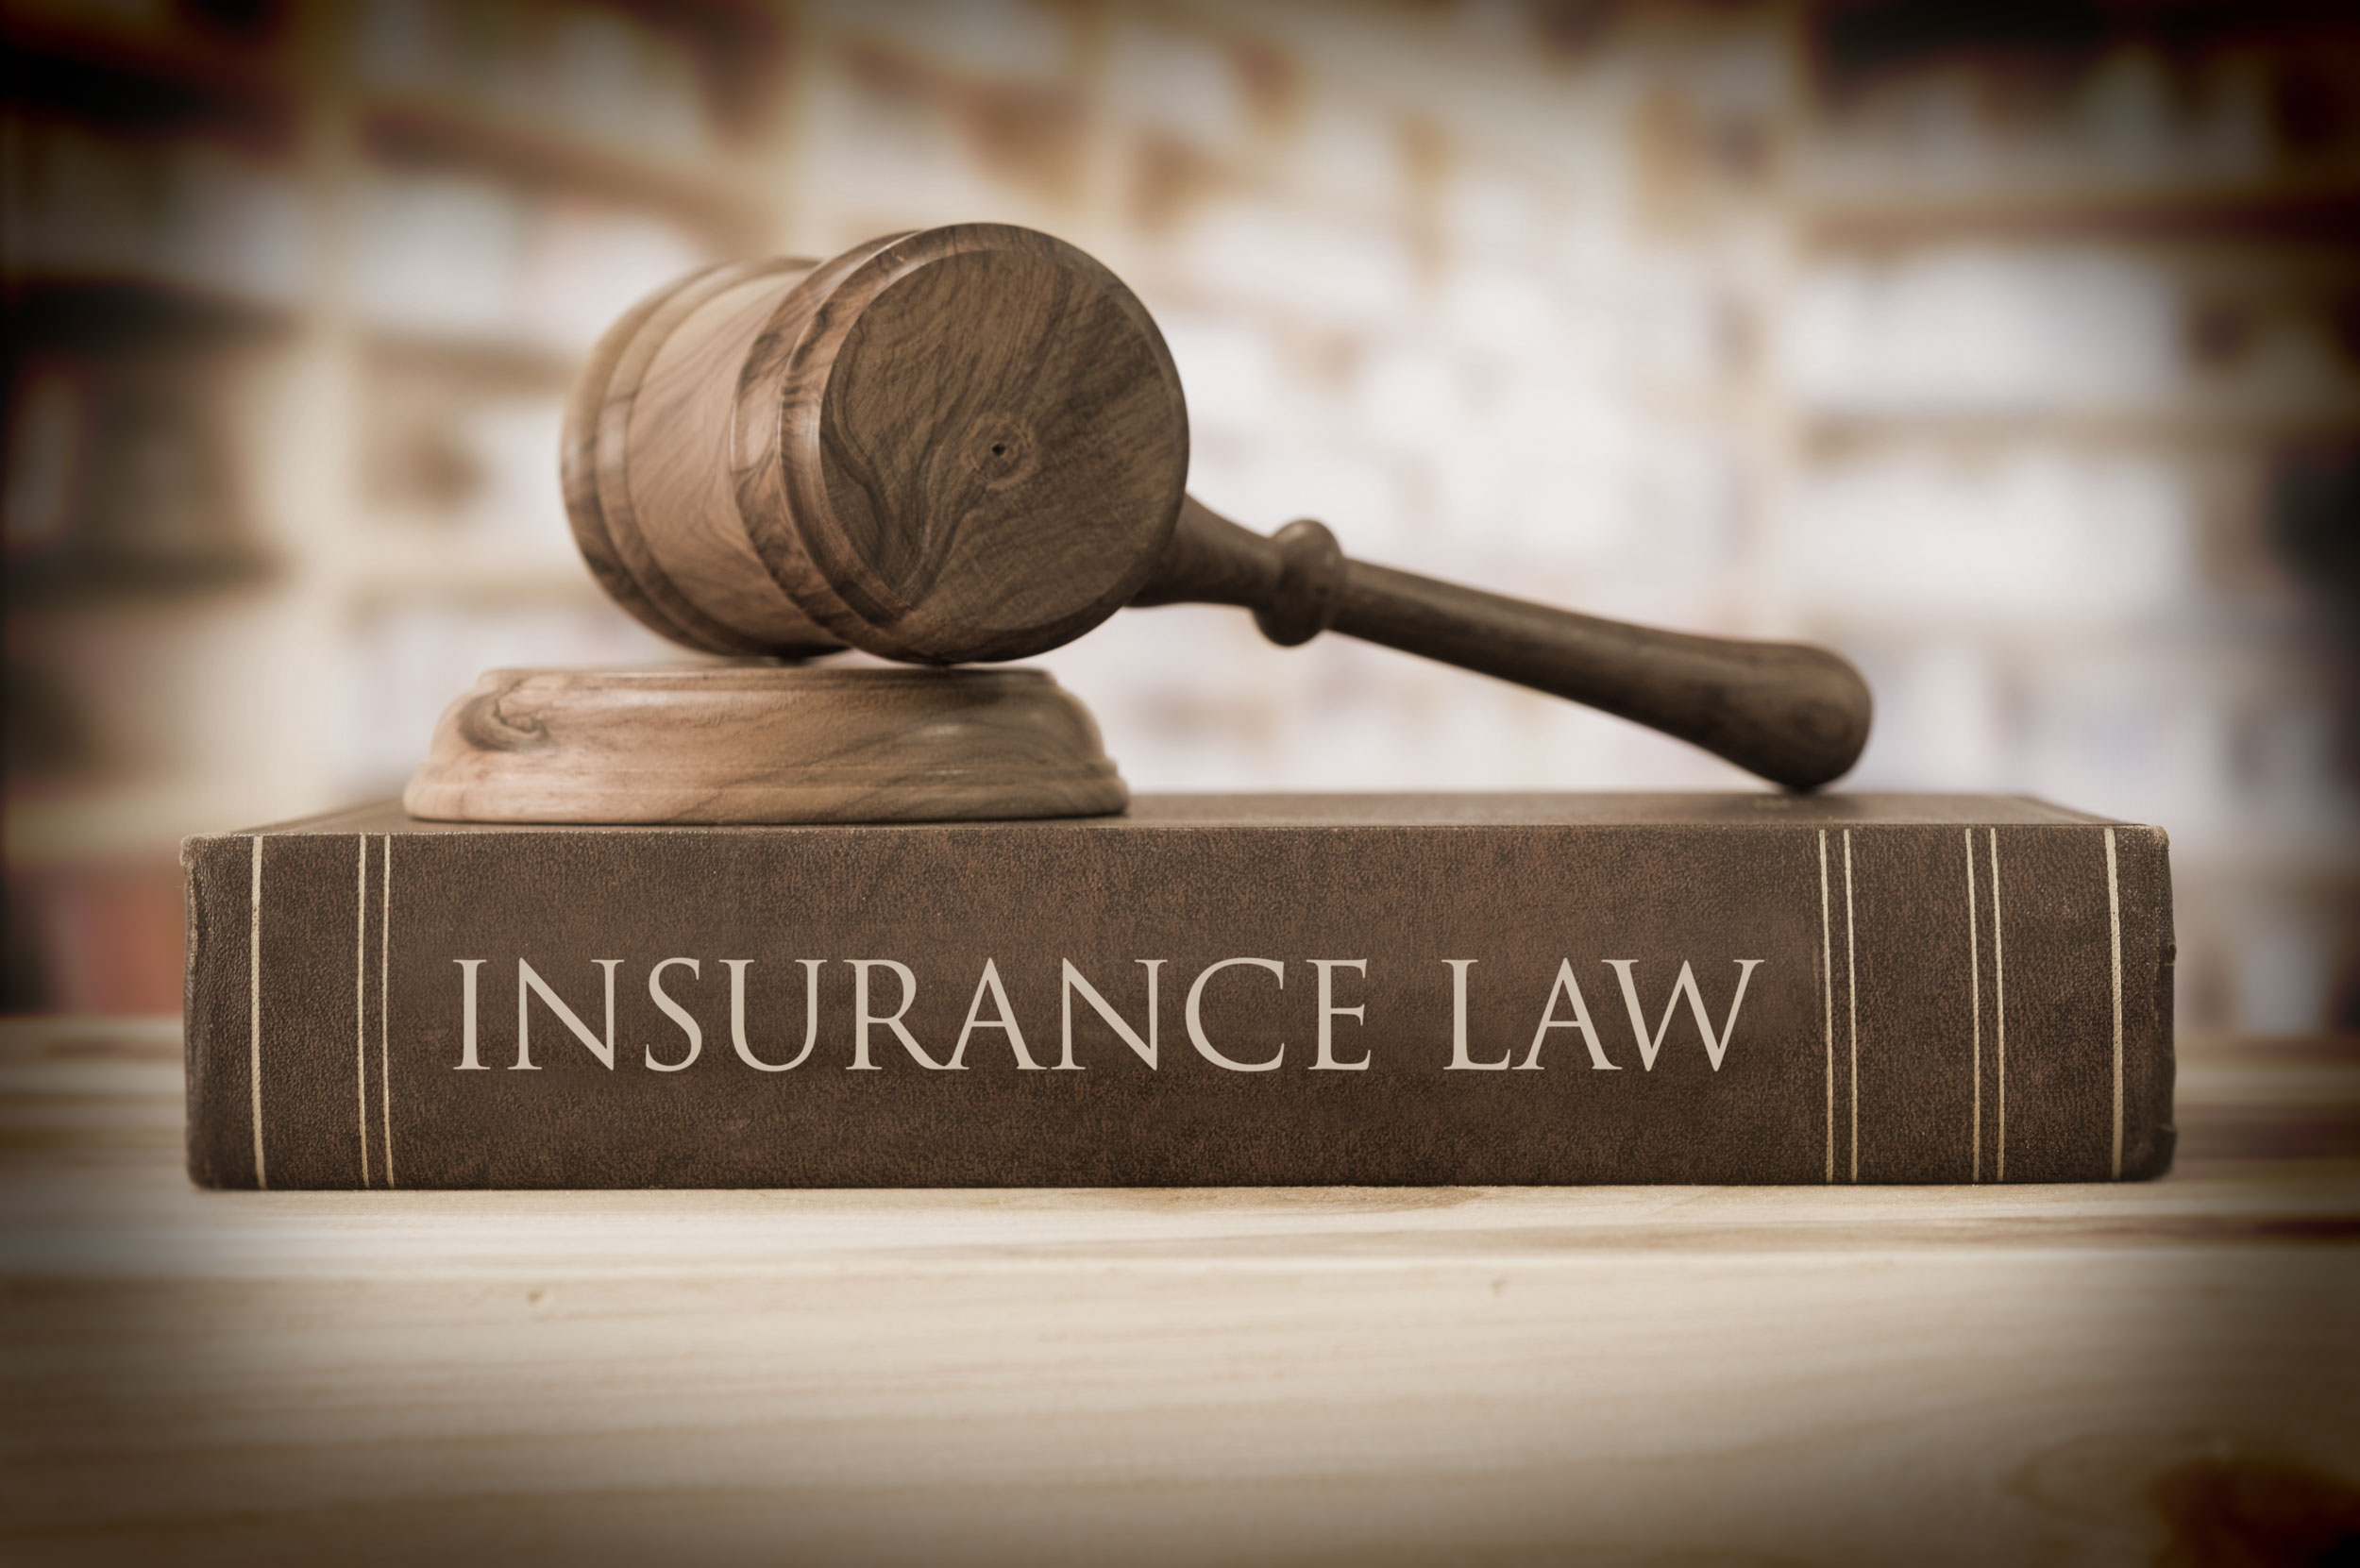 Insurance Law books and gavel